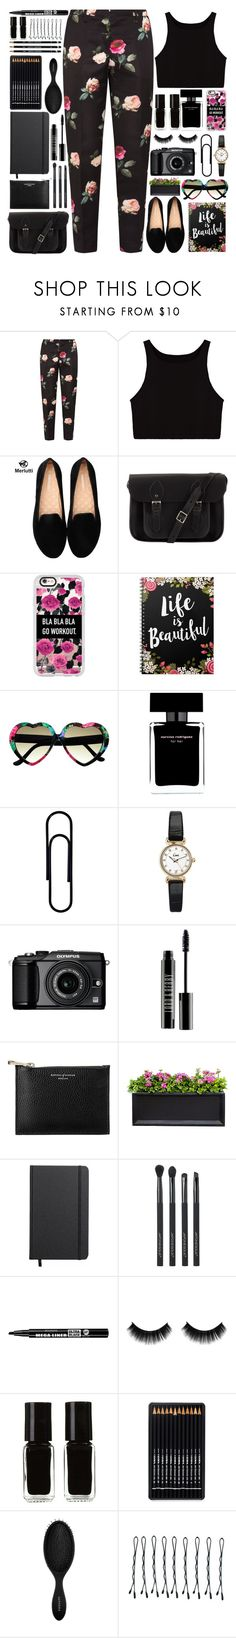 """""""The Odyssey"""" by annaclaraalvez on Polyvore featuring moda, N°21, The Cambridge Satchel Company, Casetify, Narciso Rodriguez, Topshop, Olympus, Lord & Berry, Aspinal of London e Campania International"""